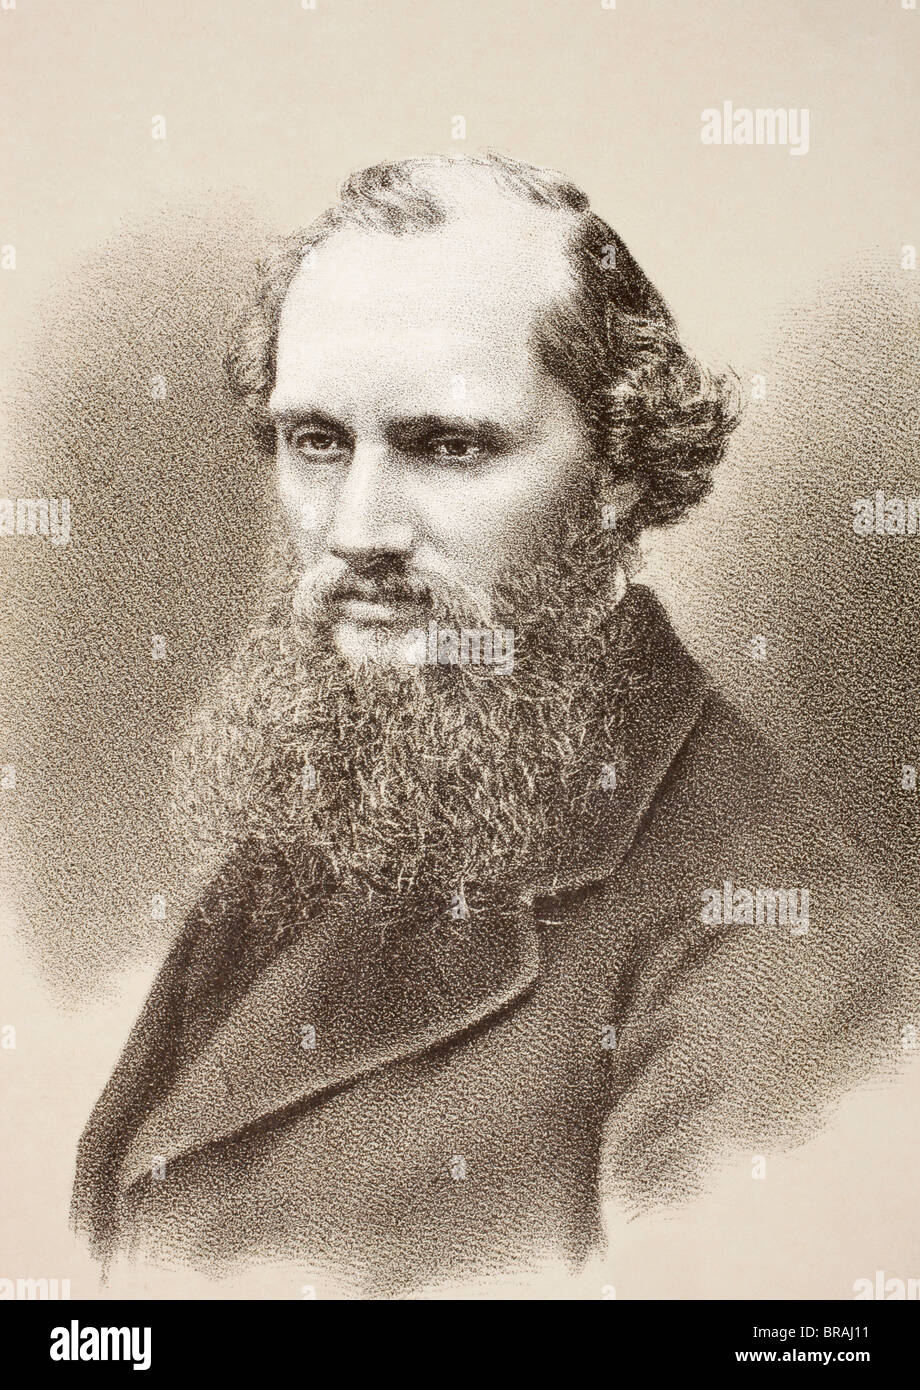 Lord William Thomson Kelvin 1824 - 1907. Belfast born physicist and mathematician. - Stock Image